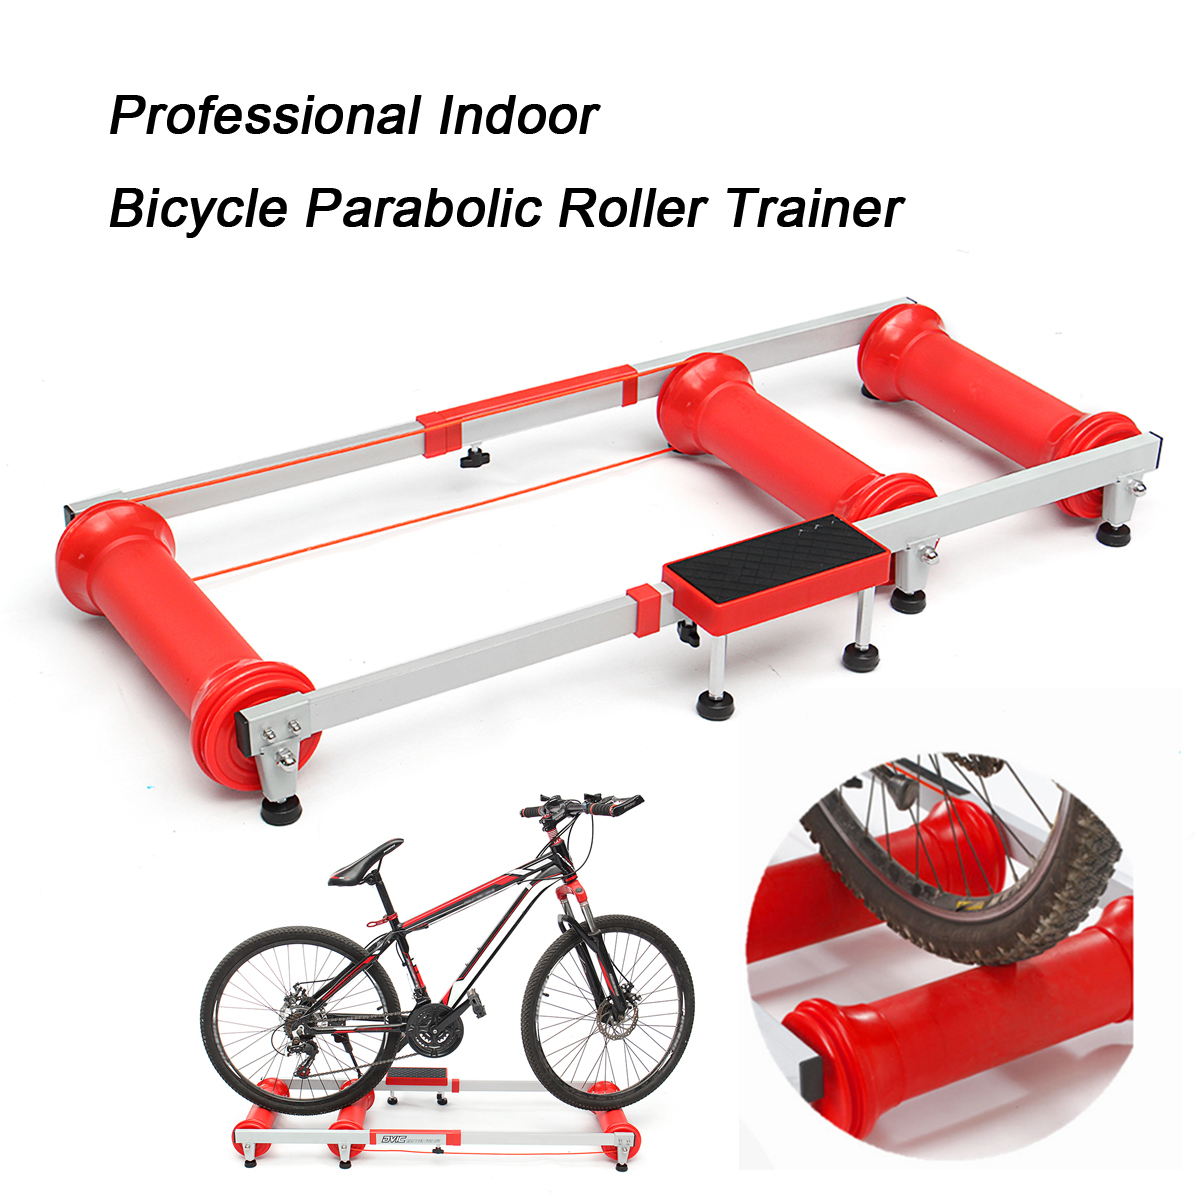 Professional Cycling Trainer Bicycle Trainer Rollers Bicycle Indoor Training Station Folding Parabolic Bike Trainers Red Box flanger professional pianist orthotics piano trainers